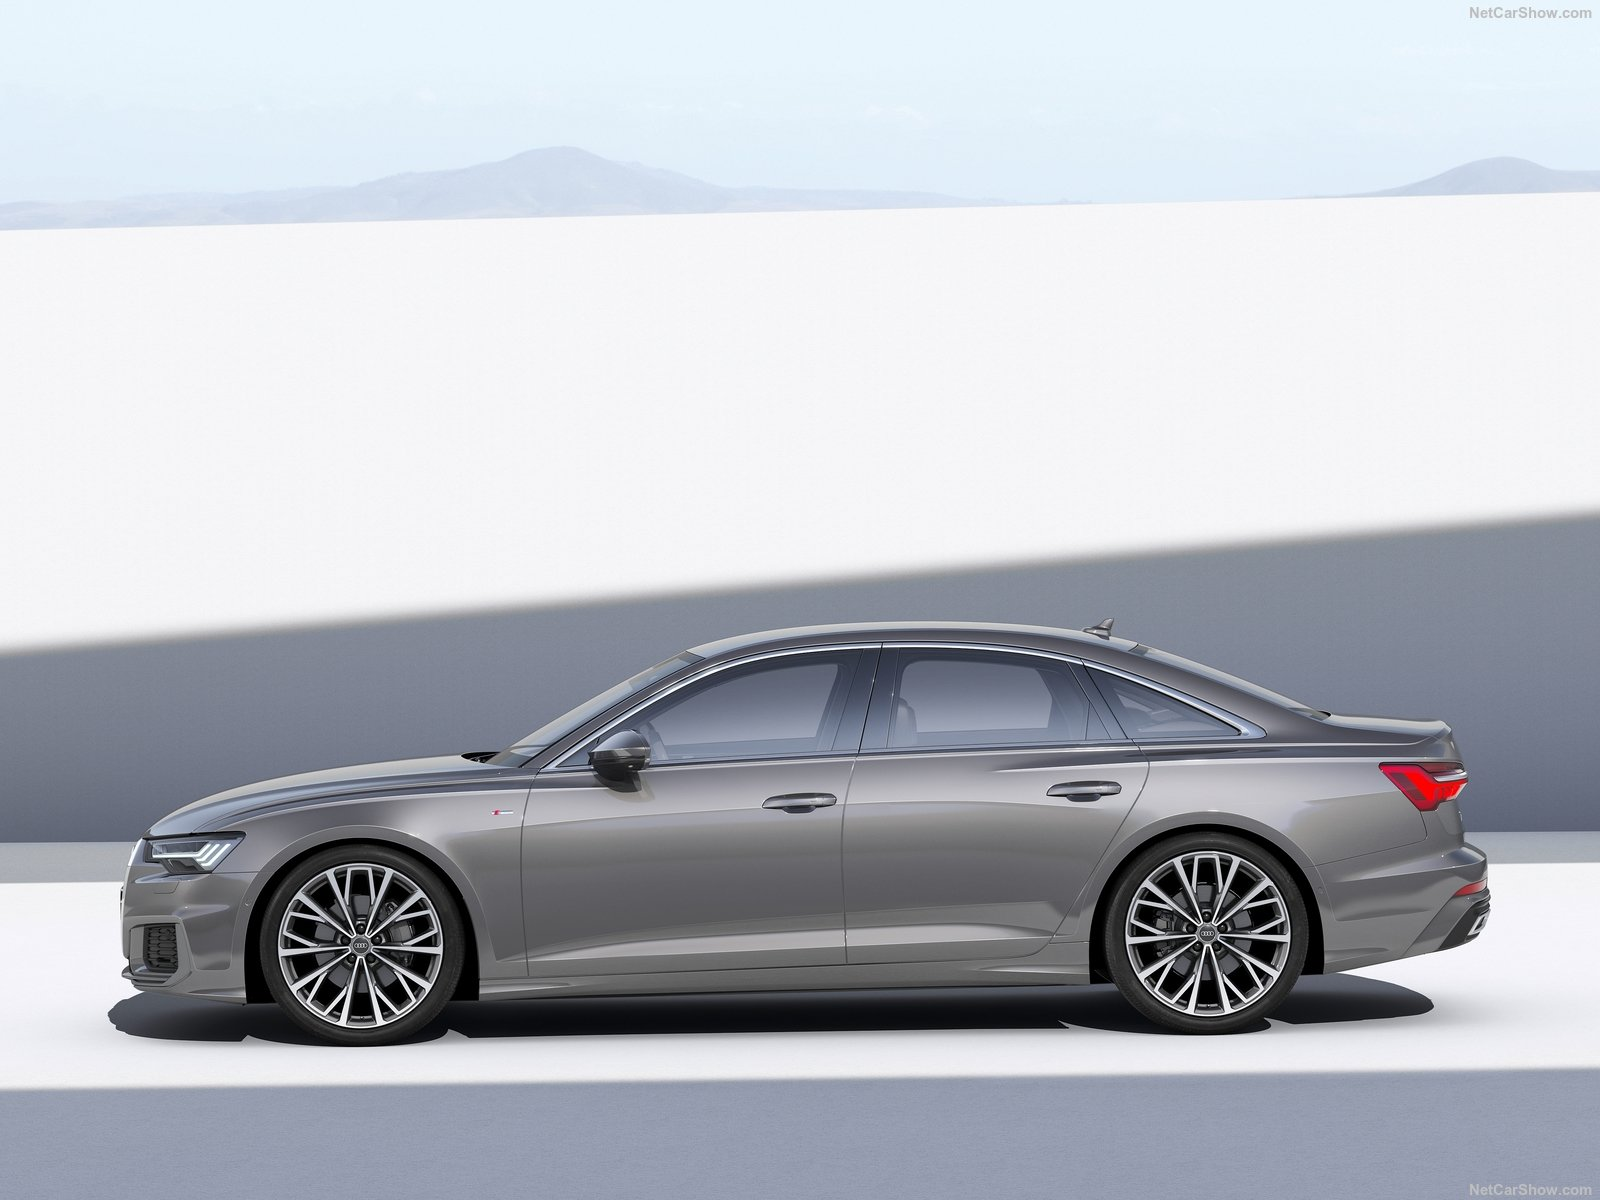 2019 Audi A6 C6 Vs 2019 Bmw 5 Series G30 Visual Comparo